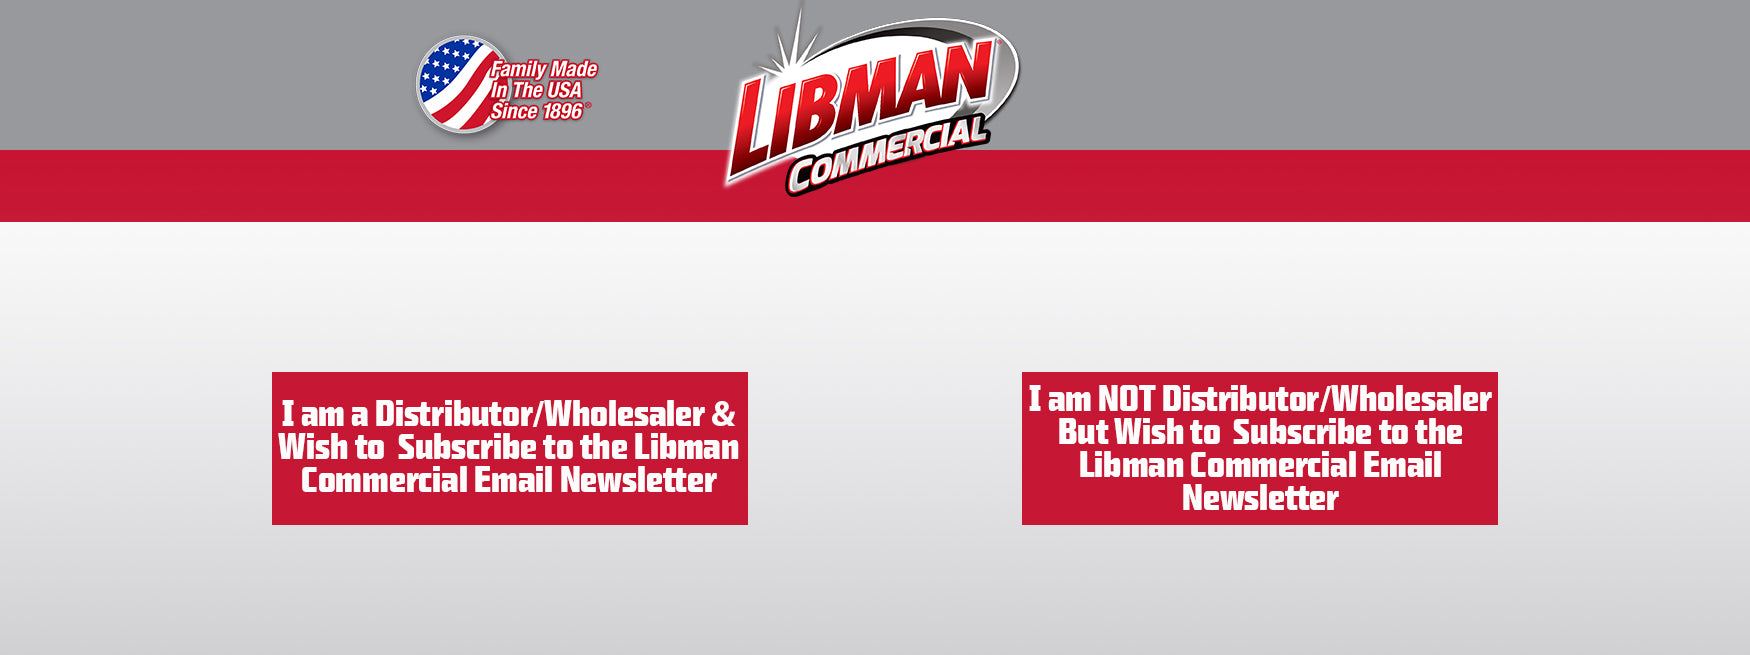 Click the button below to subscribe to the proper Libman Commercial Email List